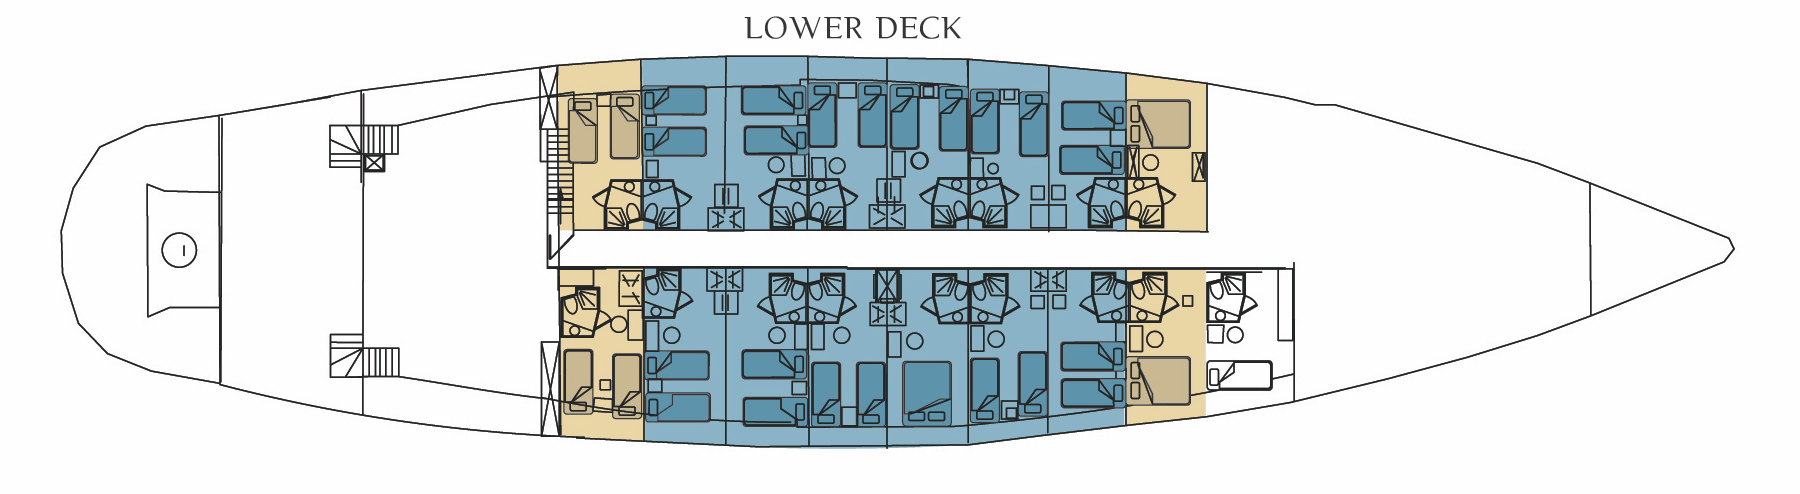 Variety Cruises Panorama Deck Plans Lower Deck.jpg